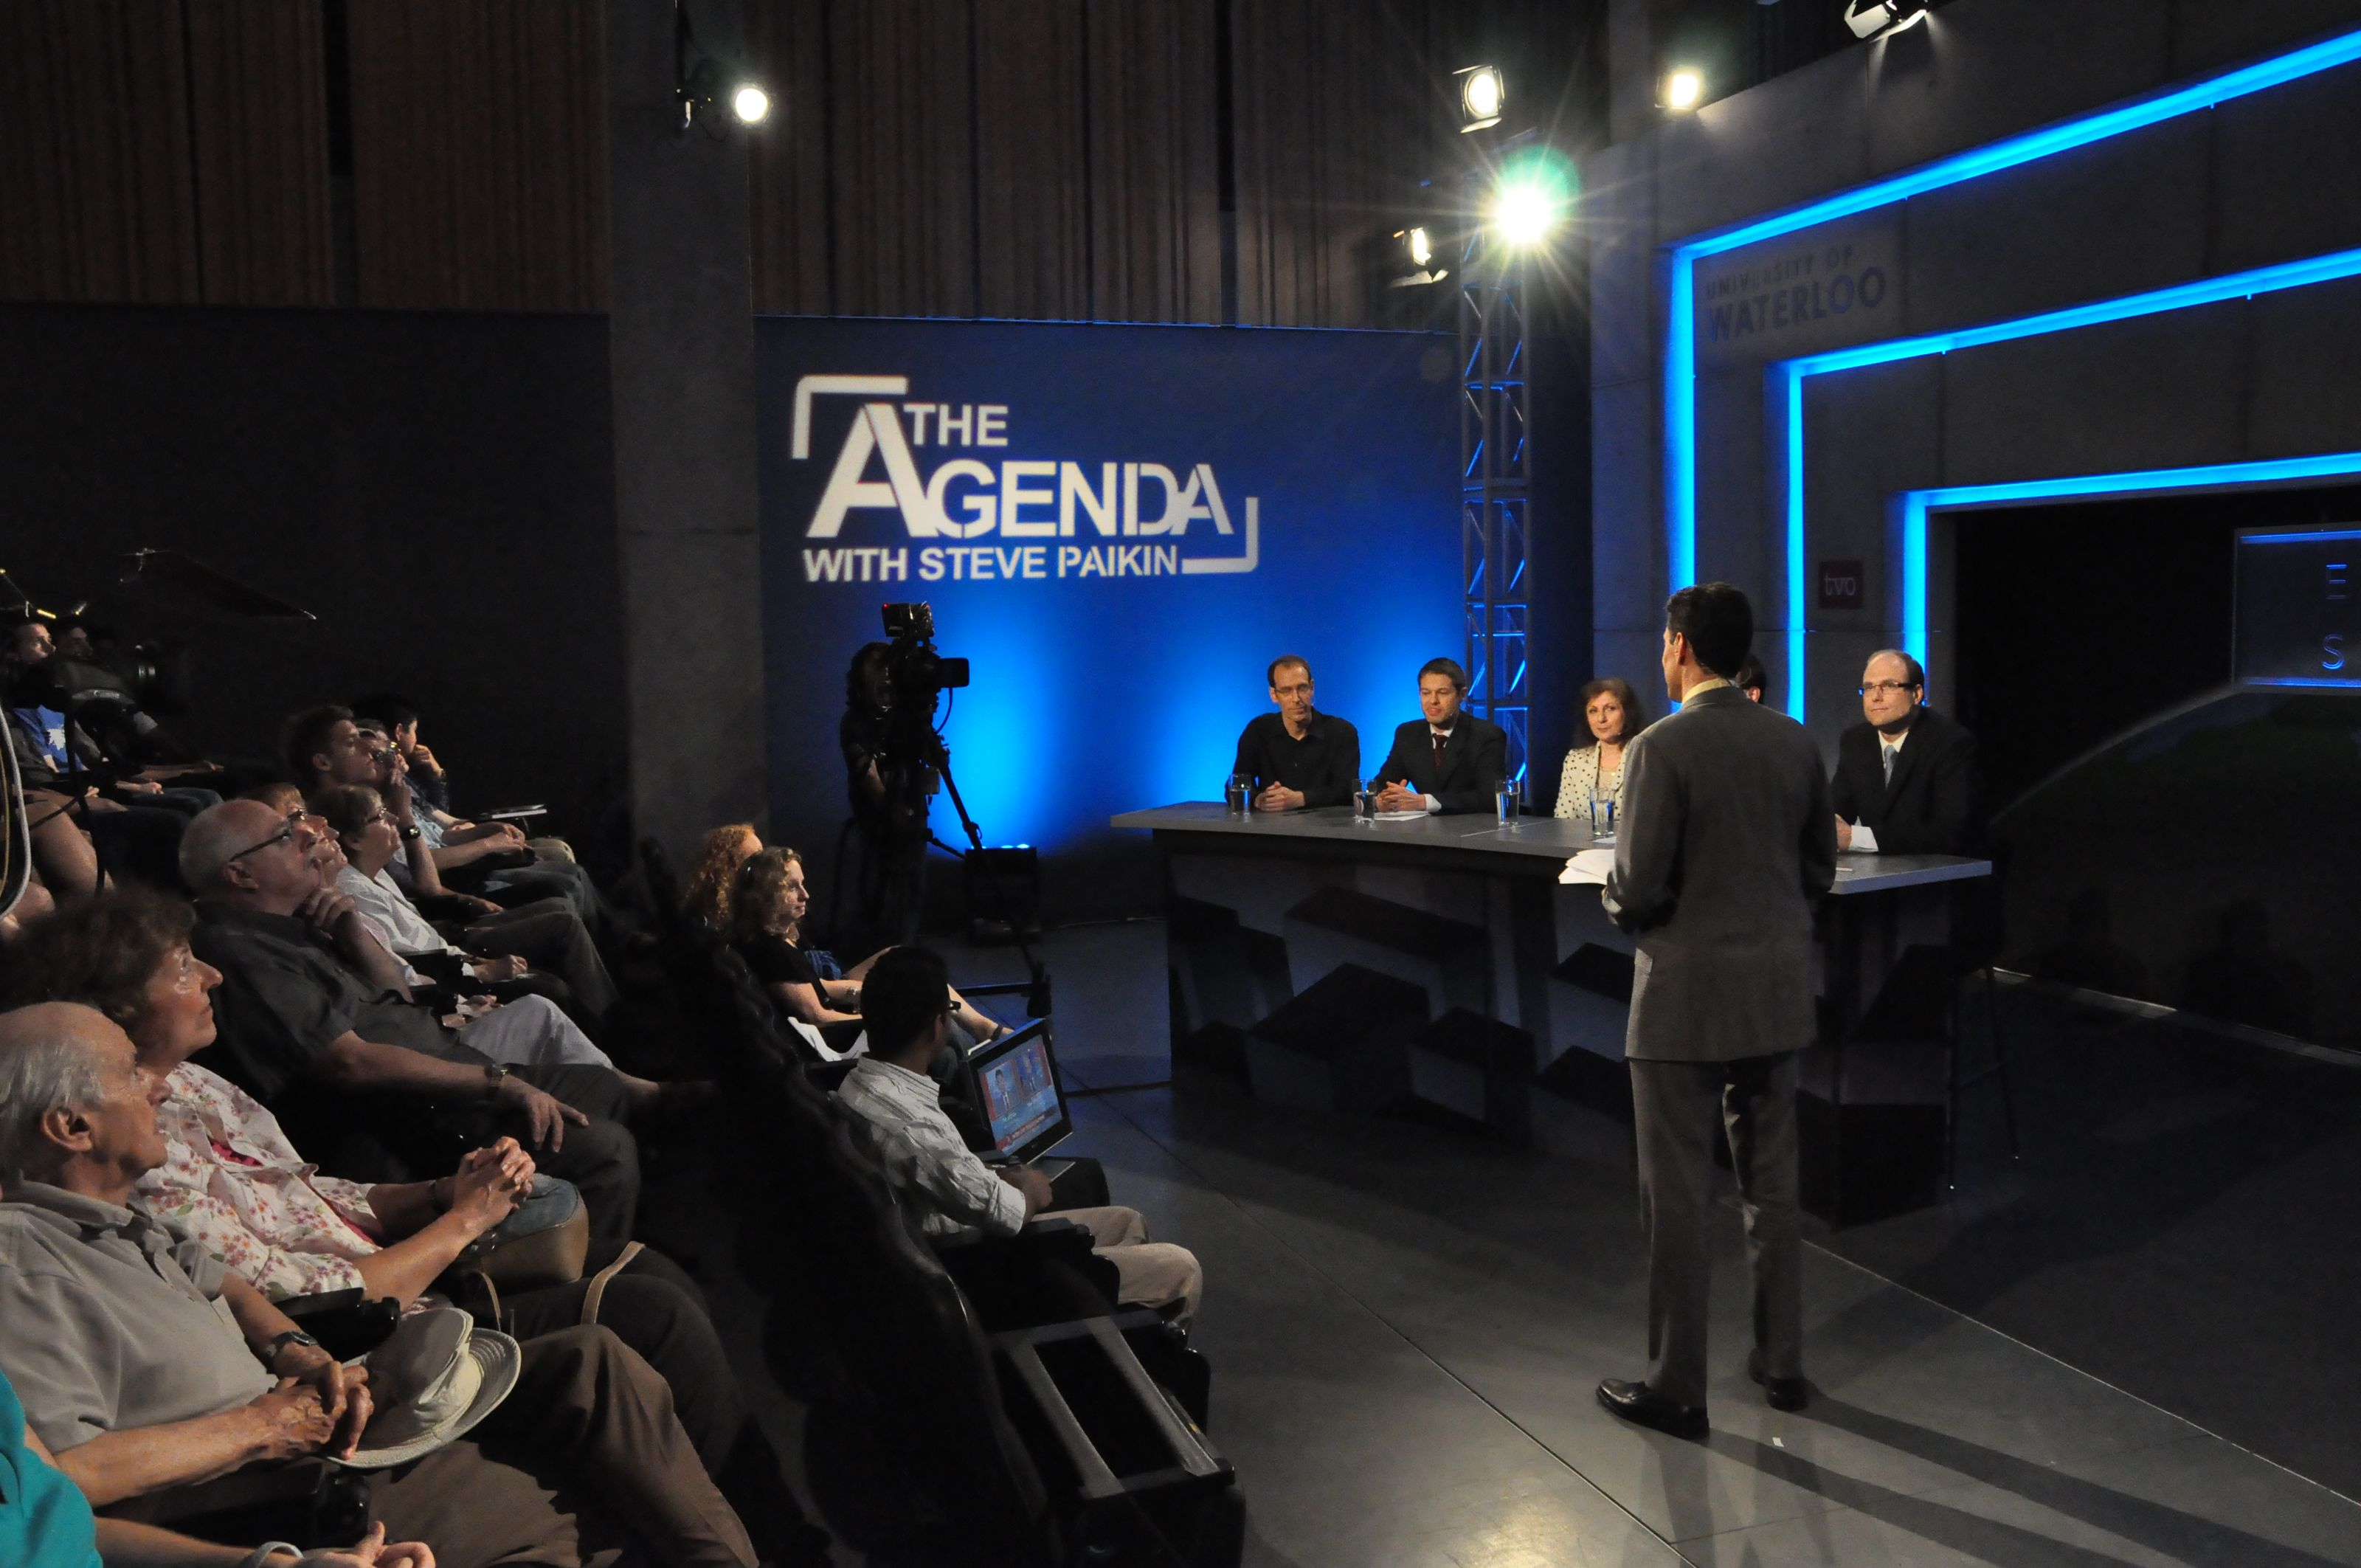 Each evening, Equinox Summit particpants discussed the ideas being developed on TVO's The Agenda, which broadcast live from the venue